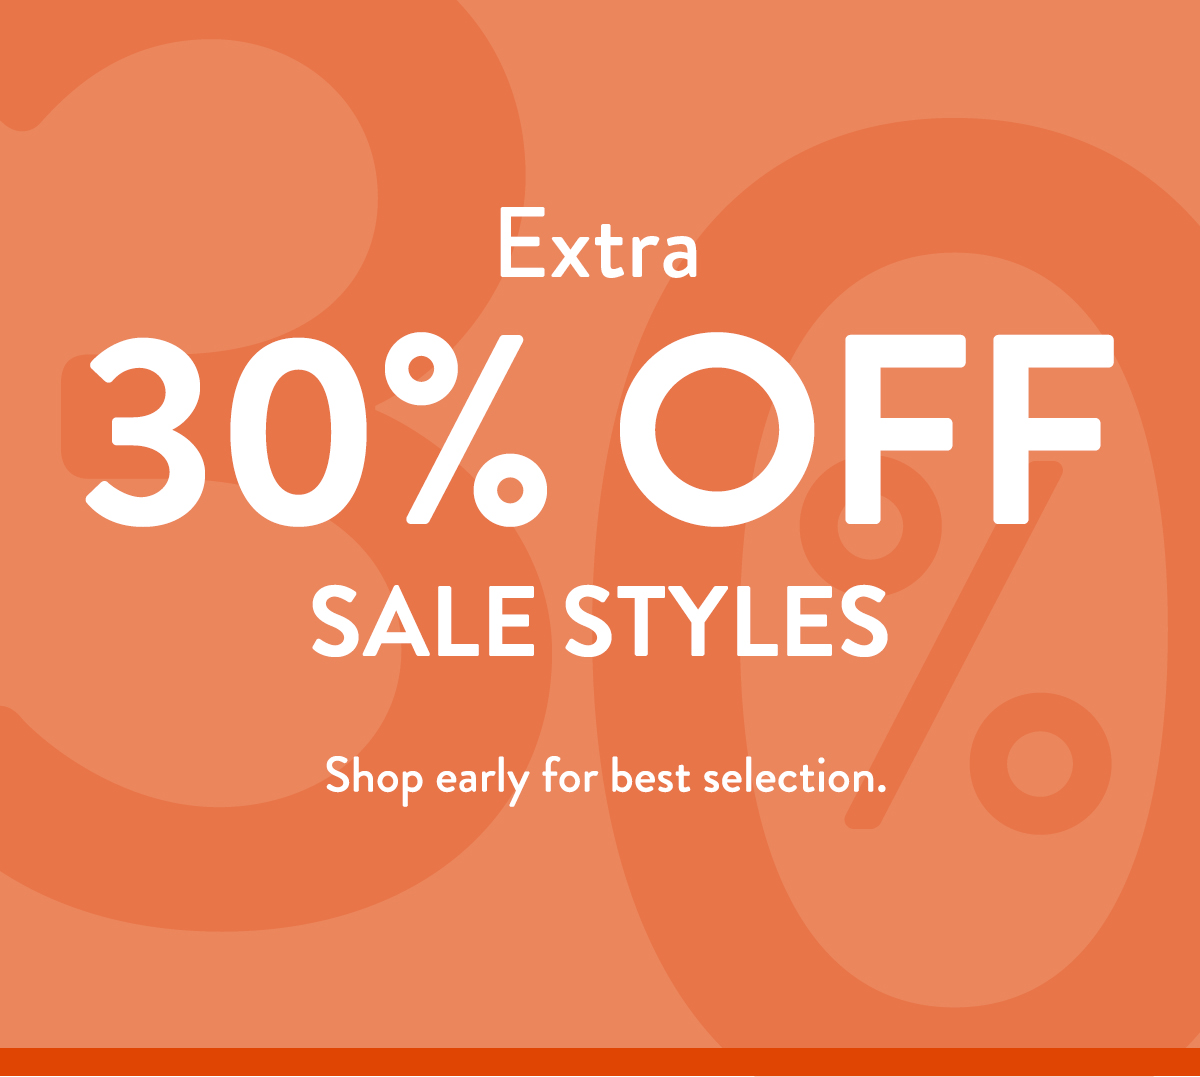 Extra 30% OFF Sale Styles. Shop early for best selection.